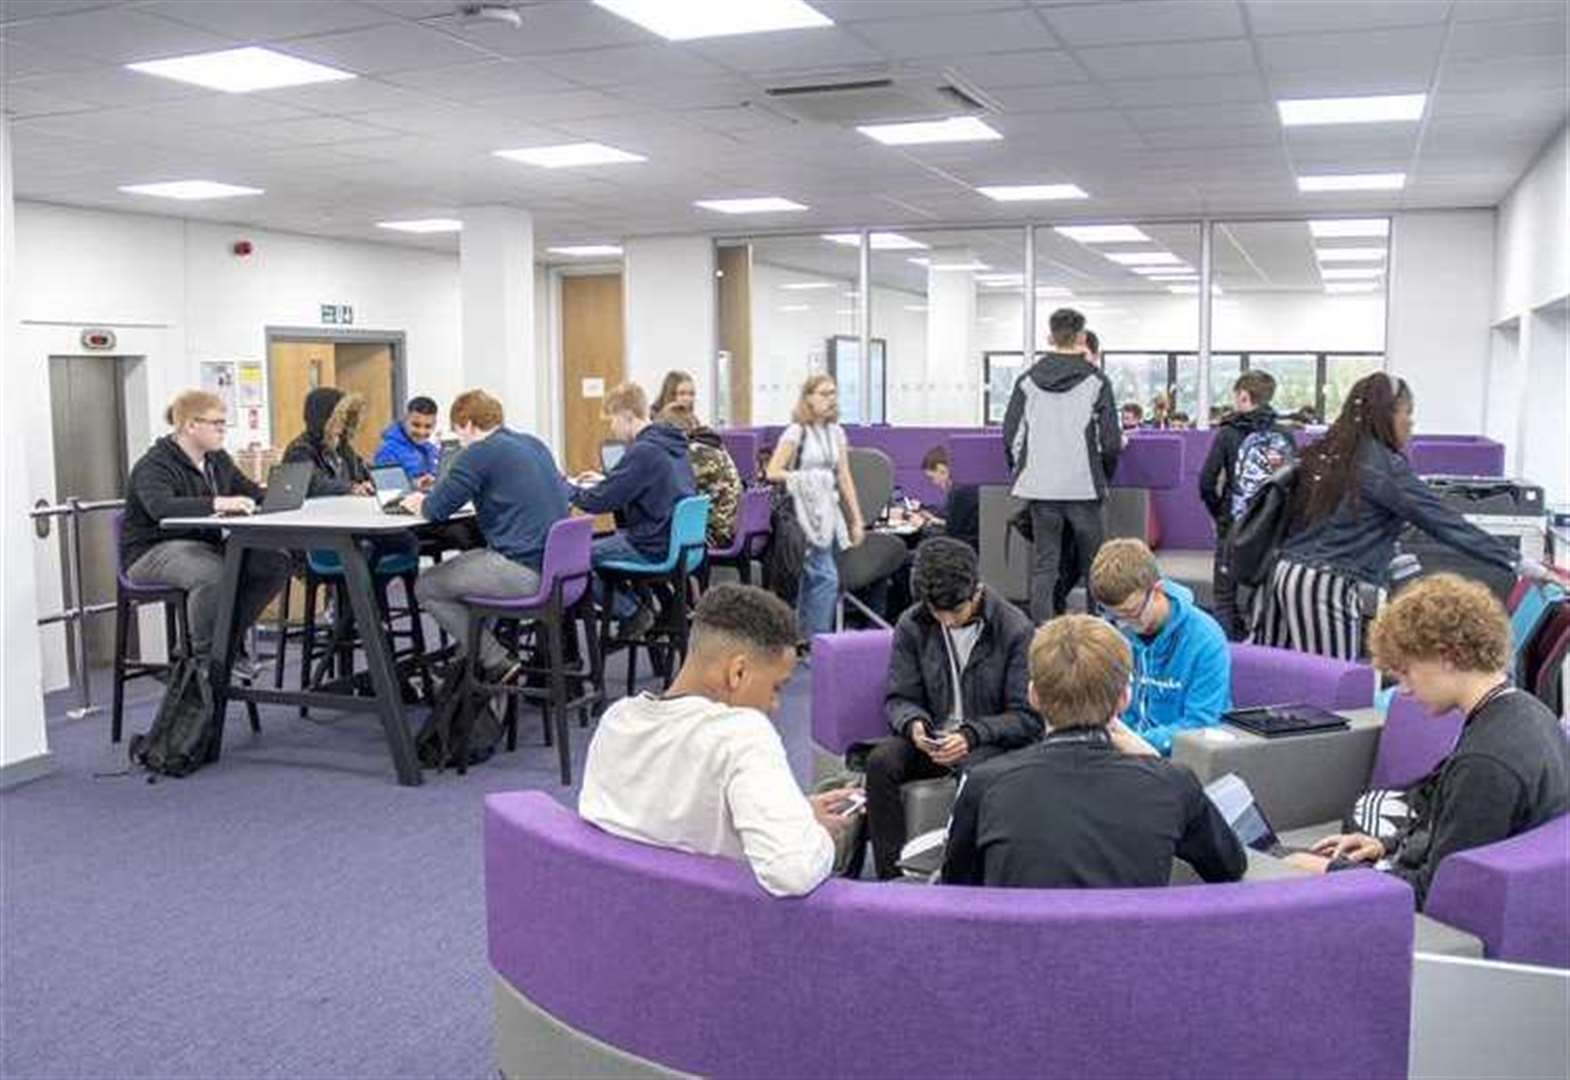 Stamford Digital Network to be launched at New College Stamford